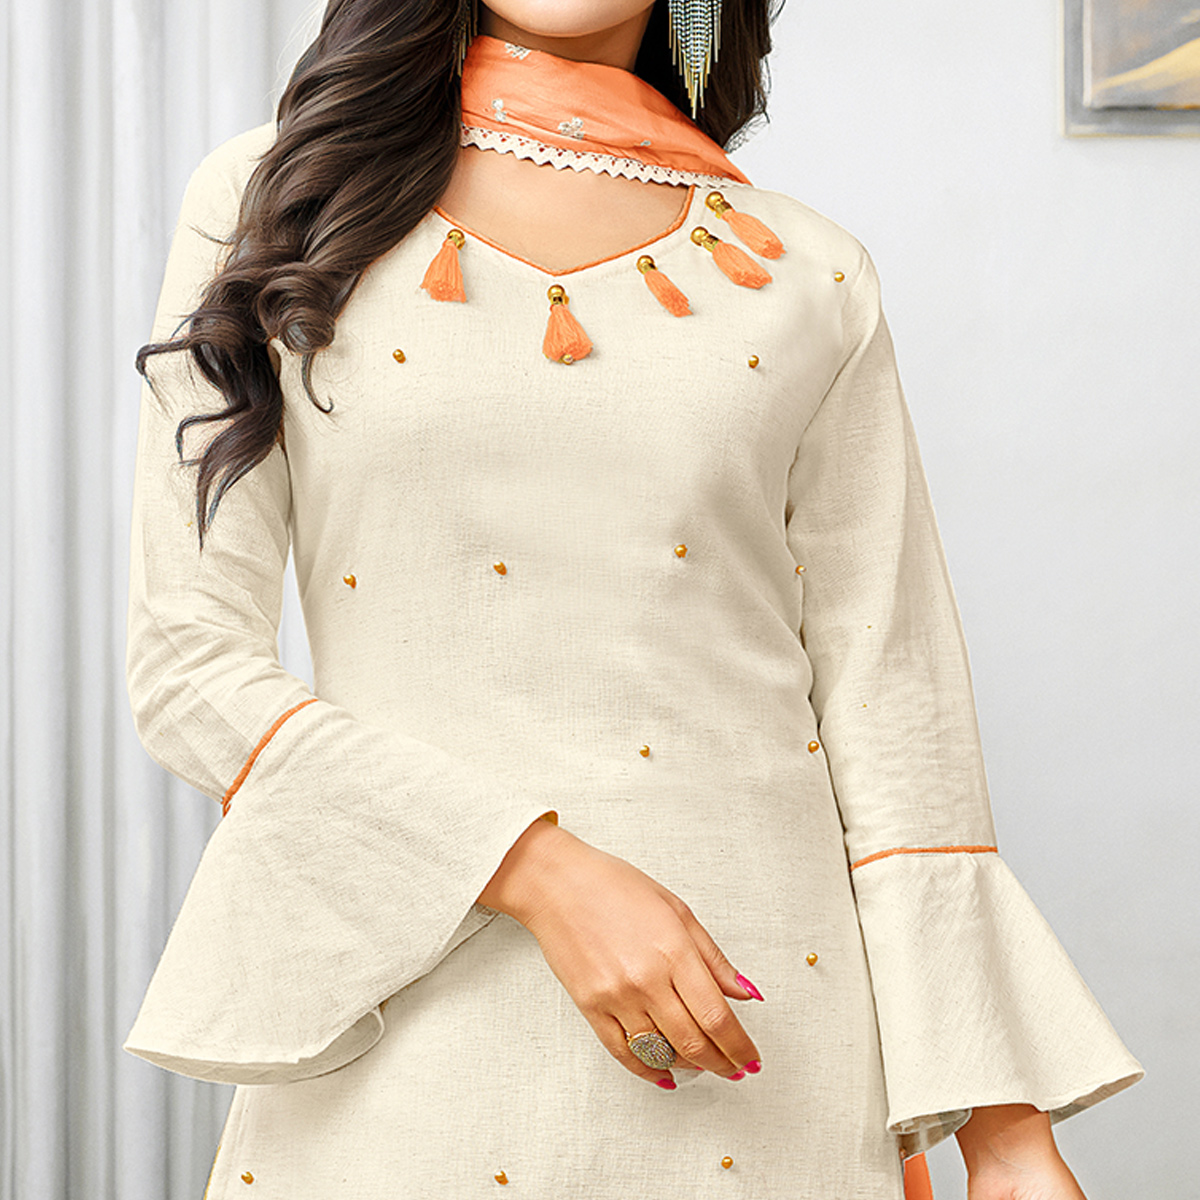 Appealing Off-White Colored Partywear Embroidered Cotton Palazzo Suit